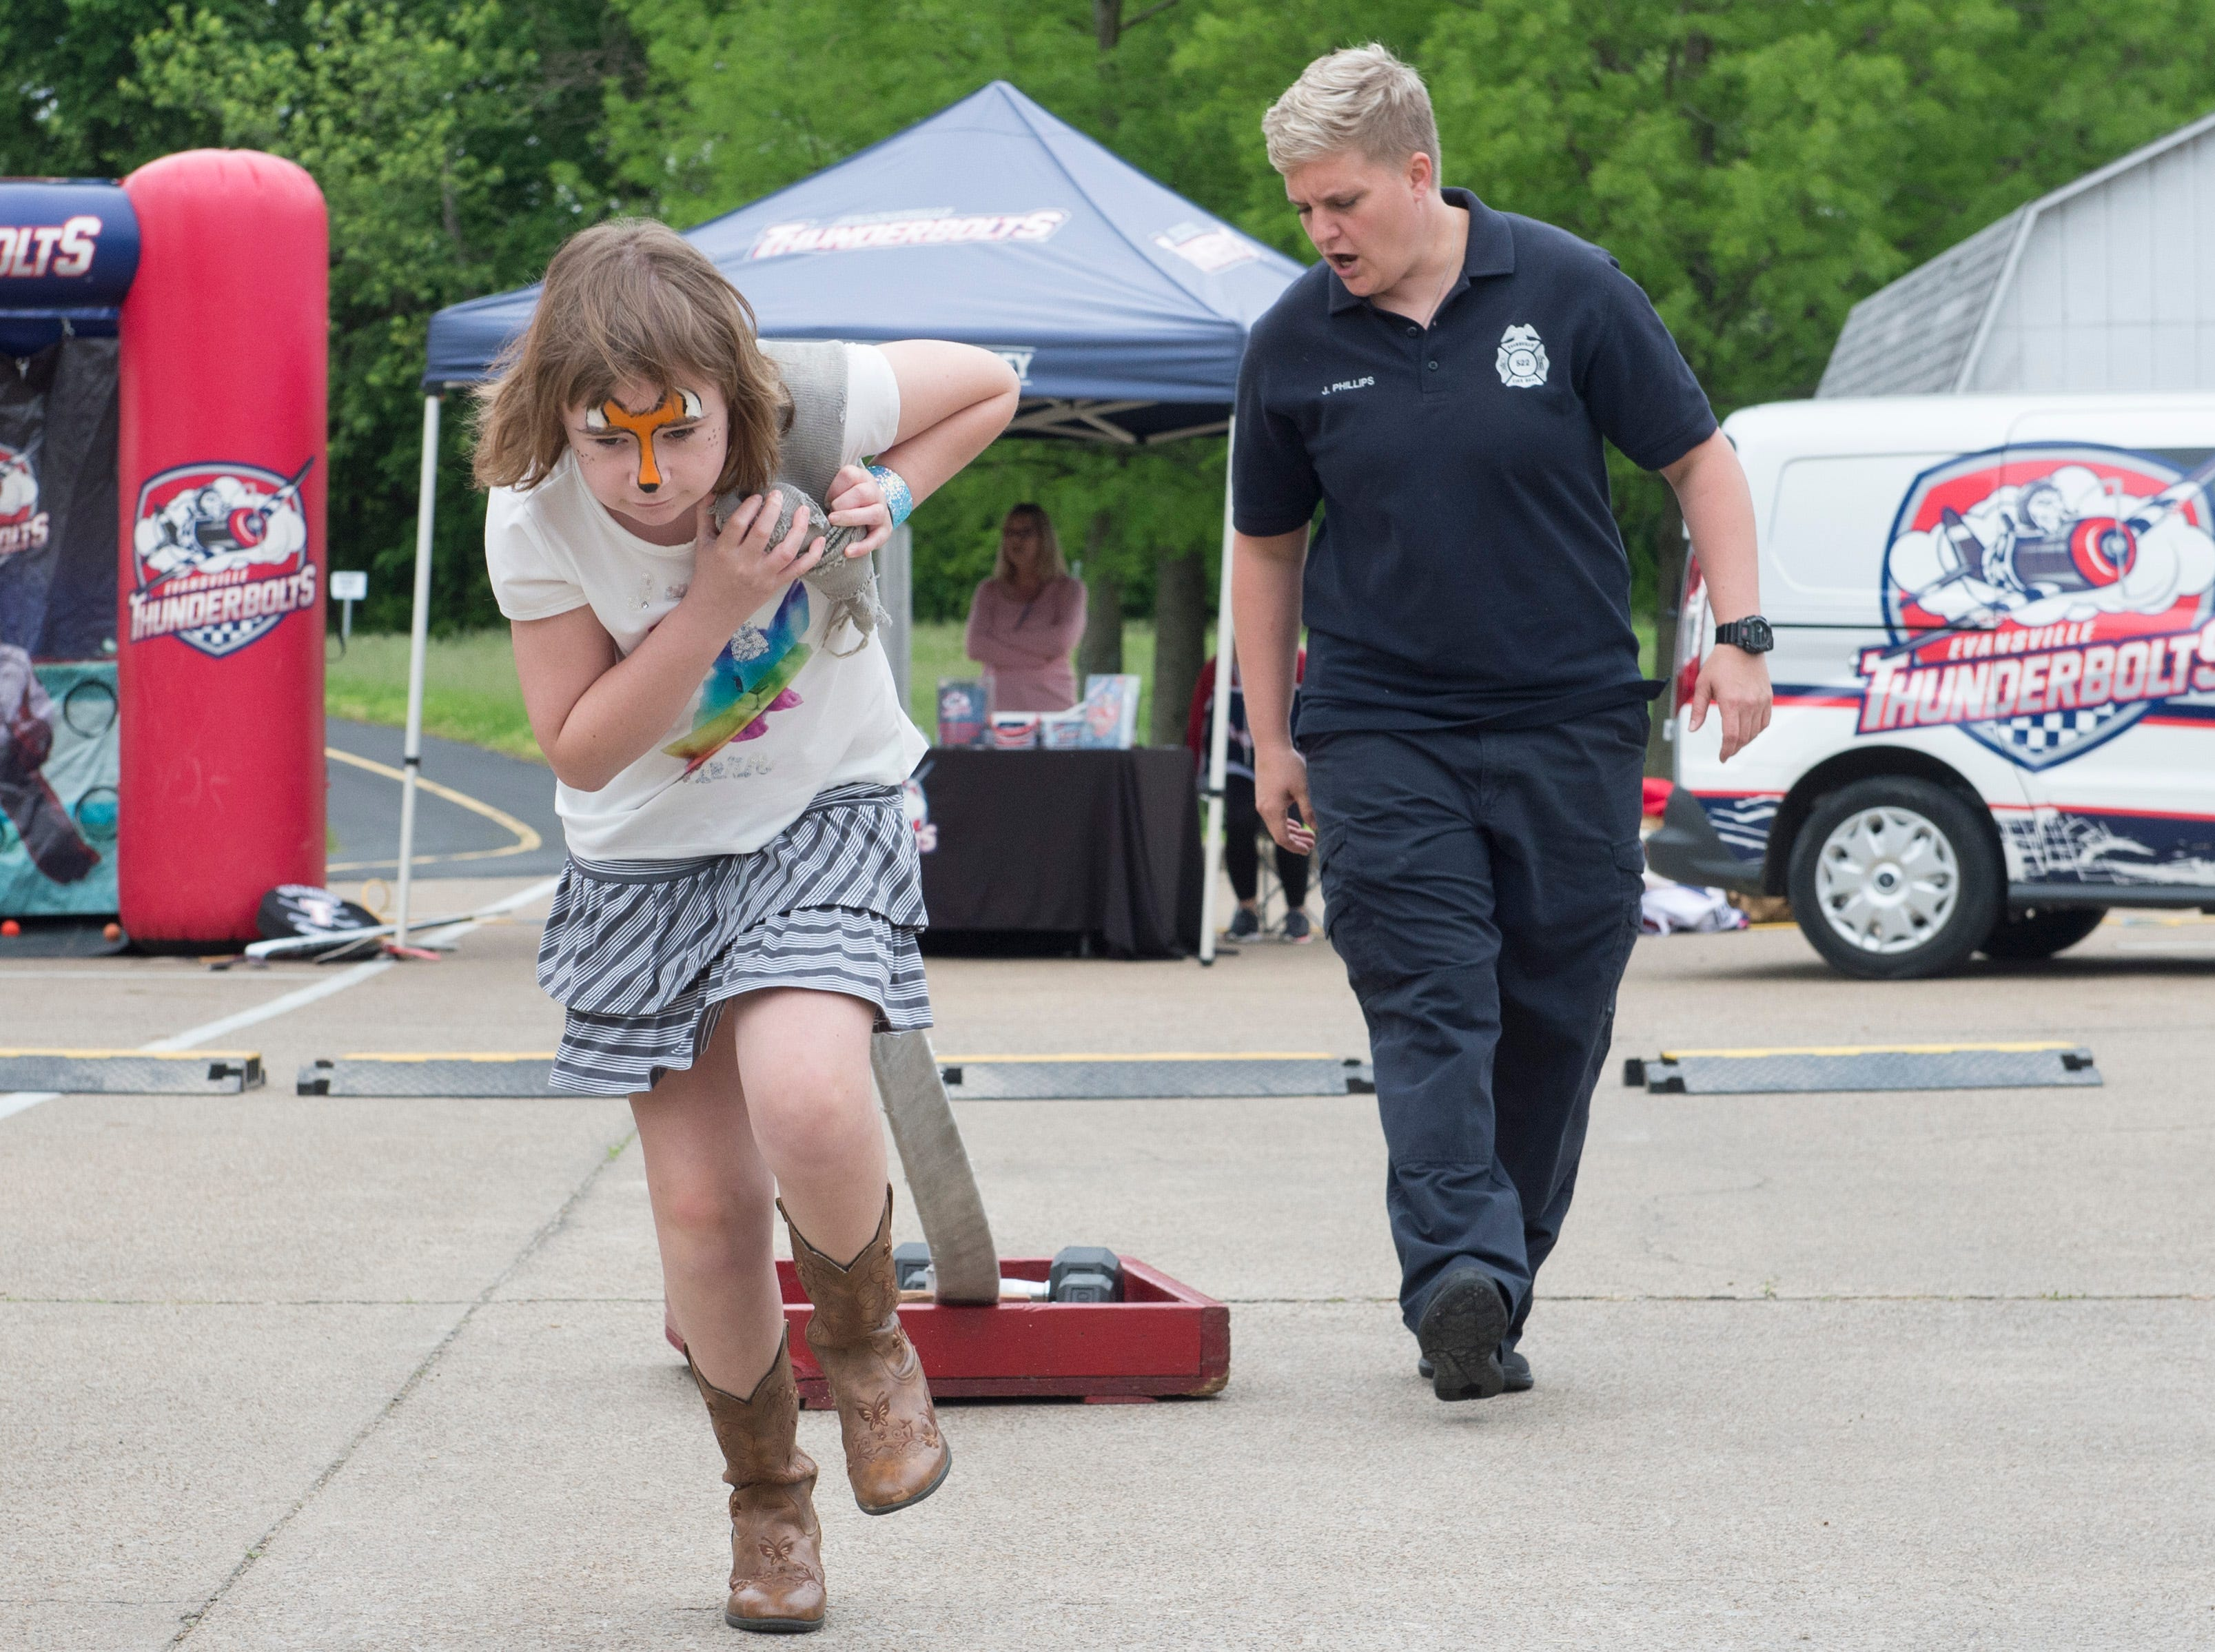 Lilly Carrico, 12, pulls a sled while running through the firefighting kiddie combat challenge activity during the 2019 Spirit Fest Saturday, May 11, 2019. Spirit Fest is a day of fun and activities that benefits the Spirit Medical Fund which raises money for the Evansville Animal Care and Control shelter.